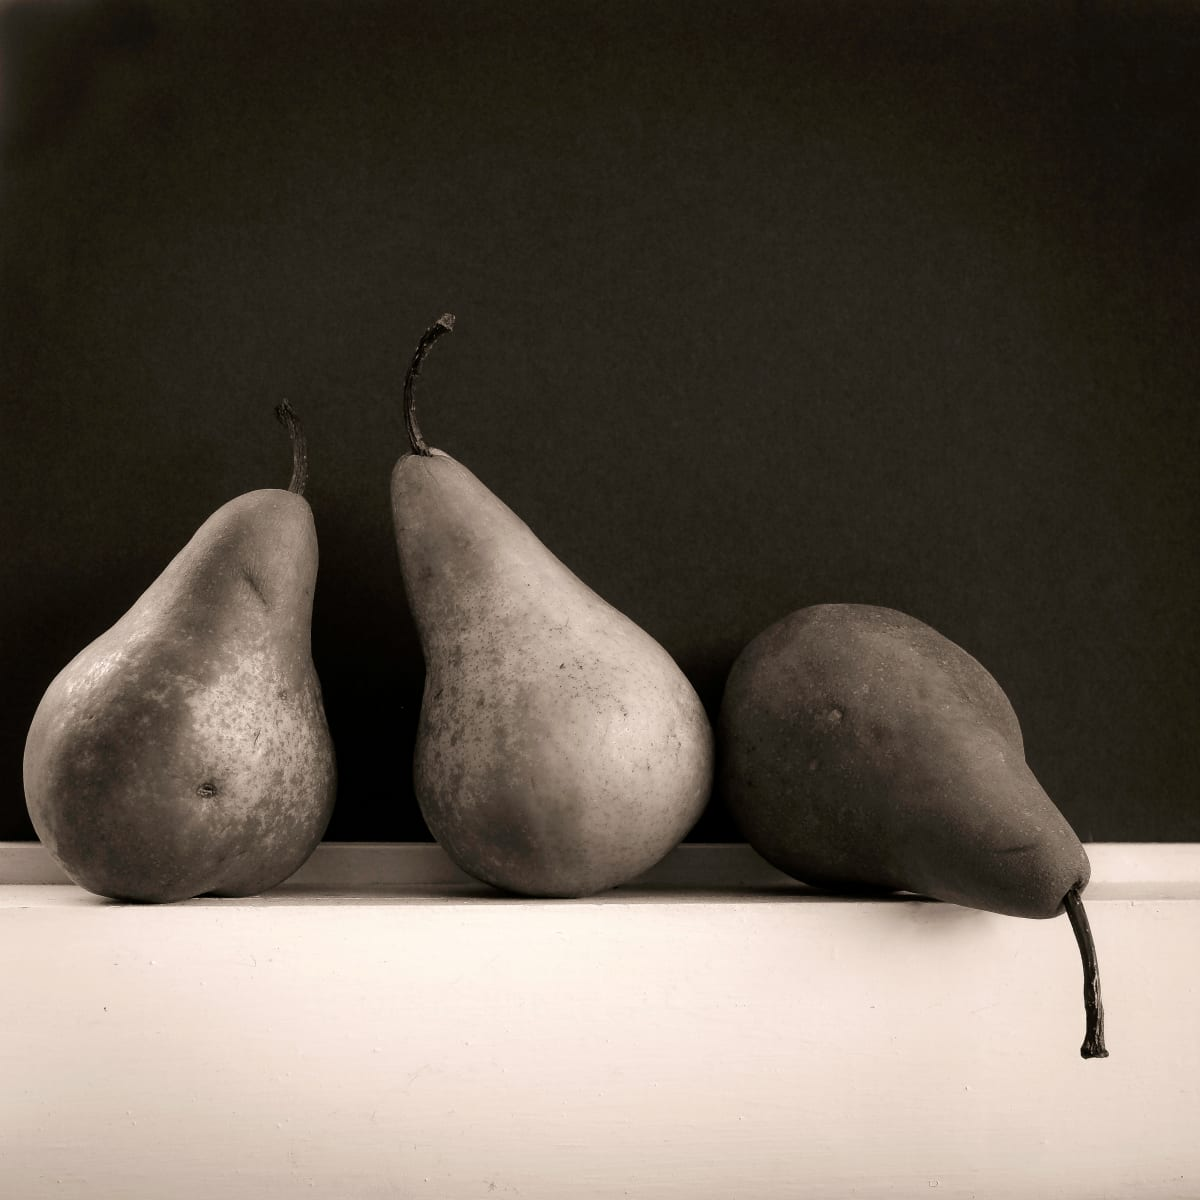 3 Pears by Kelly Sinclair